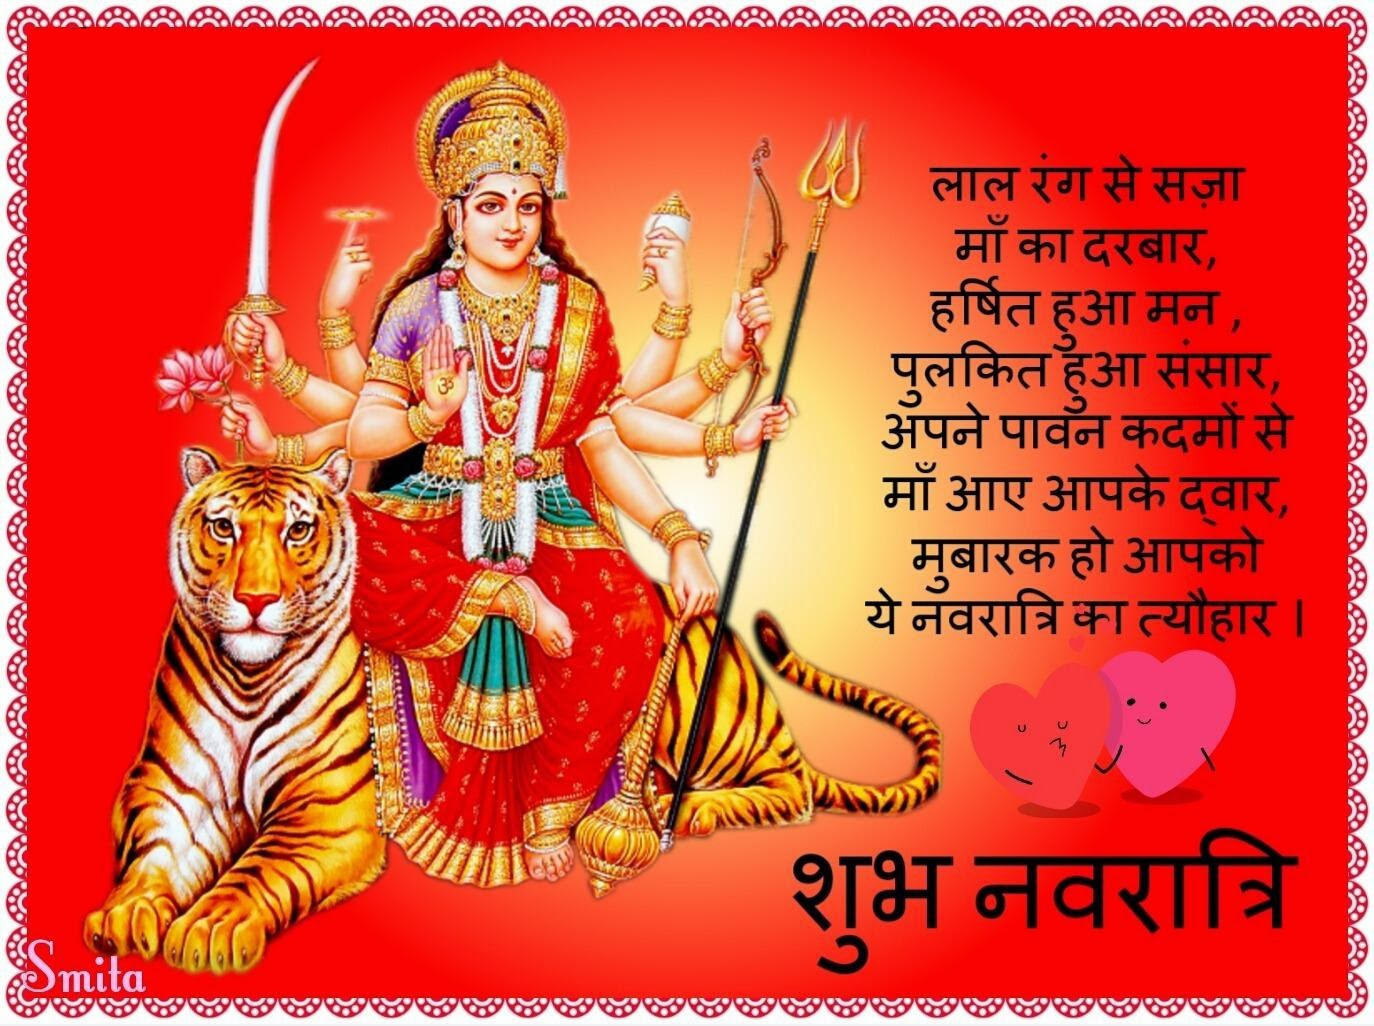 Navratri HD Images, Photos and Wallpaper for Mobile and Desktop DP